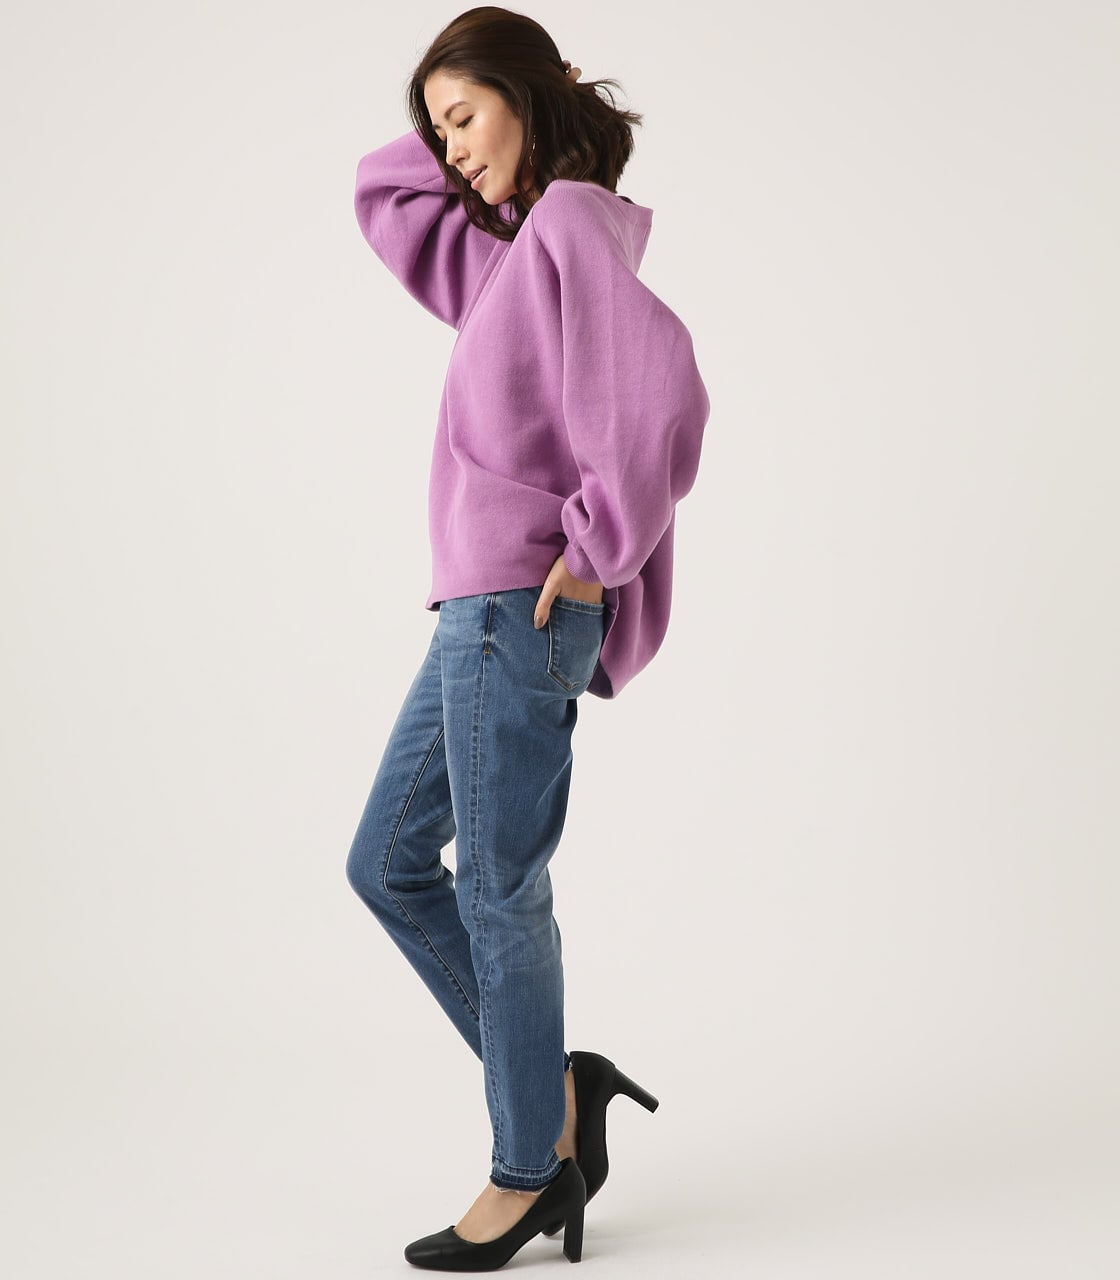 【AZUL BY MOUSSY】SWEATTER Vネック LOOSE TOPS 詳細画像 L/PUR 4